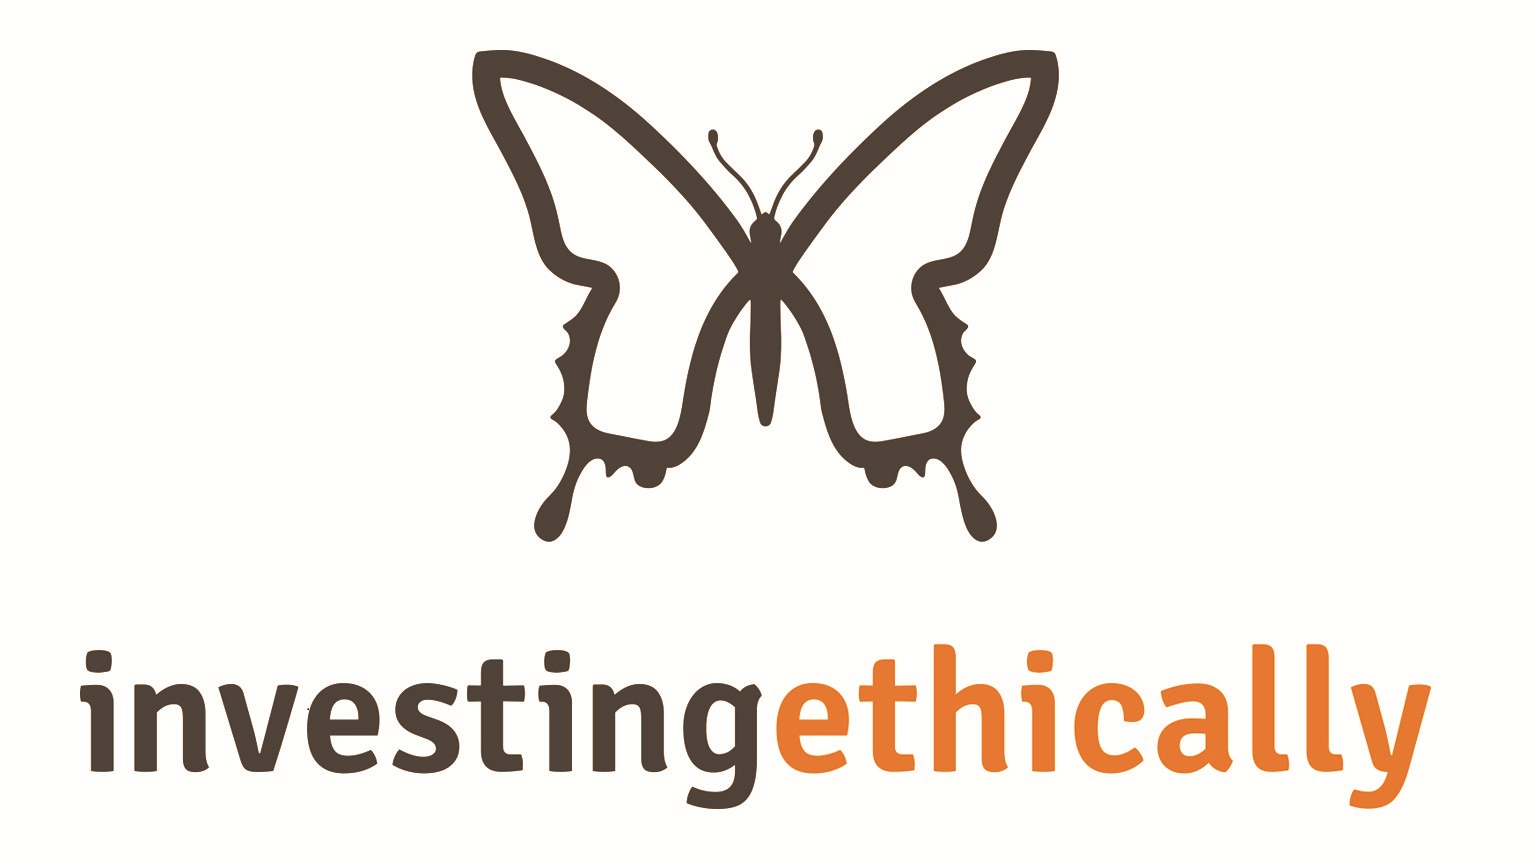 Investing Ethically - company logo